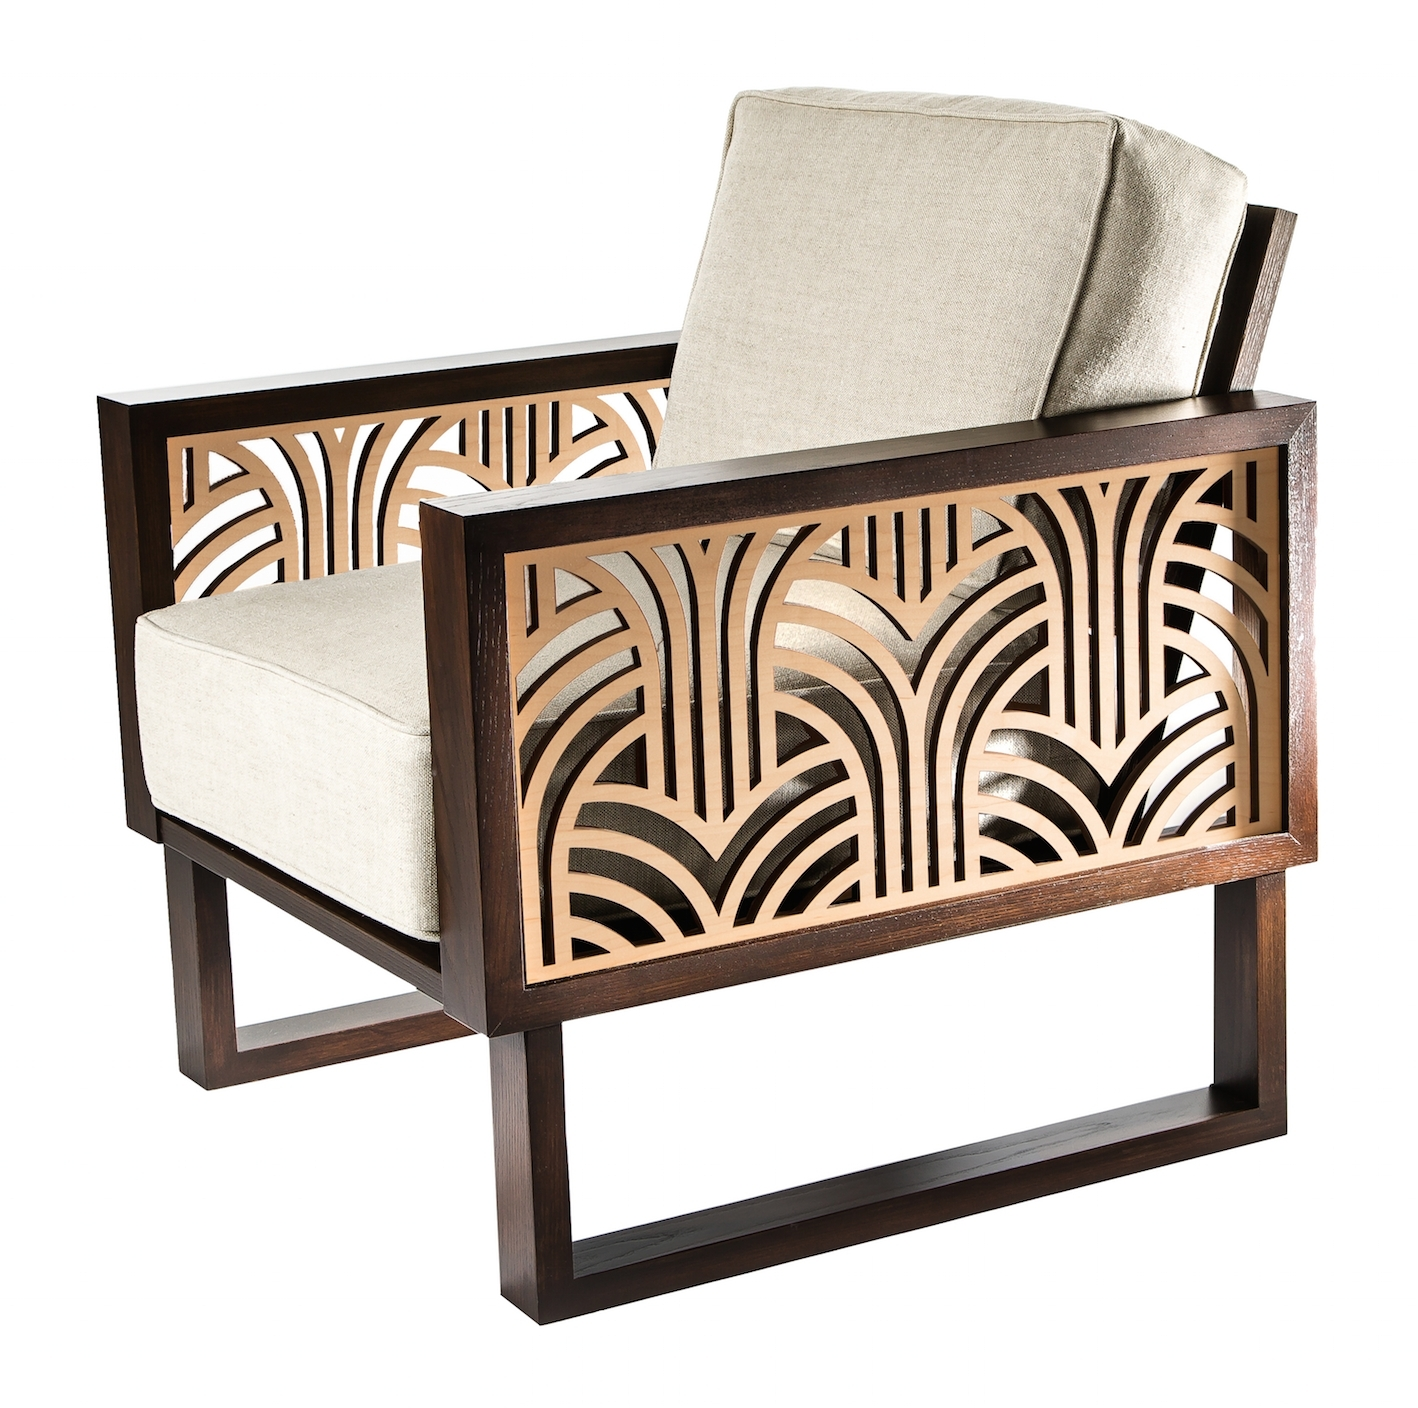 Well Liked 13 Art Deco Chairs – Art Deco Furniture For Art Deco Sofas (View 14 of 15)